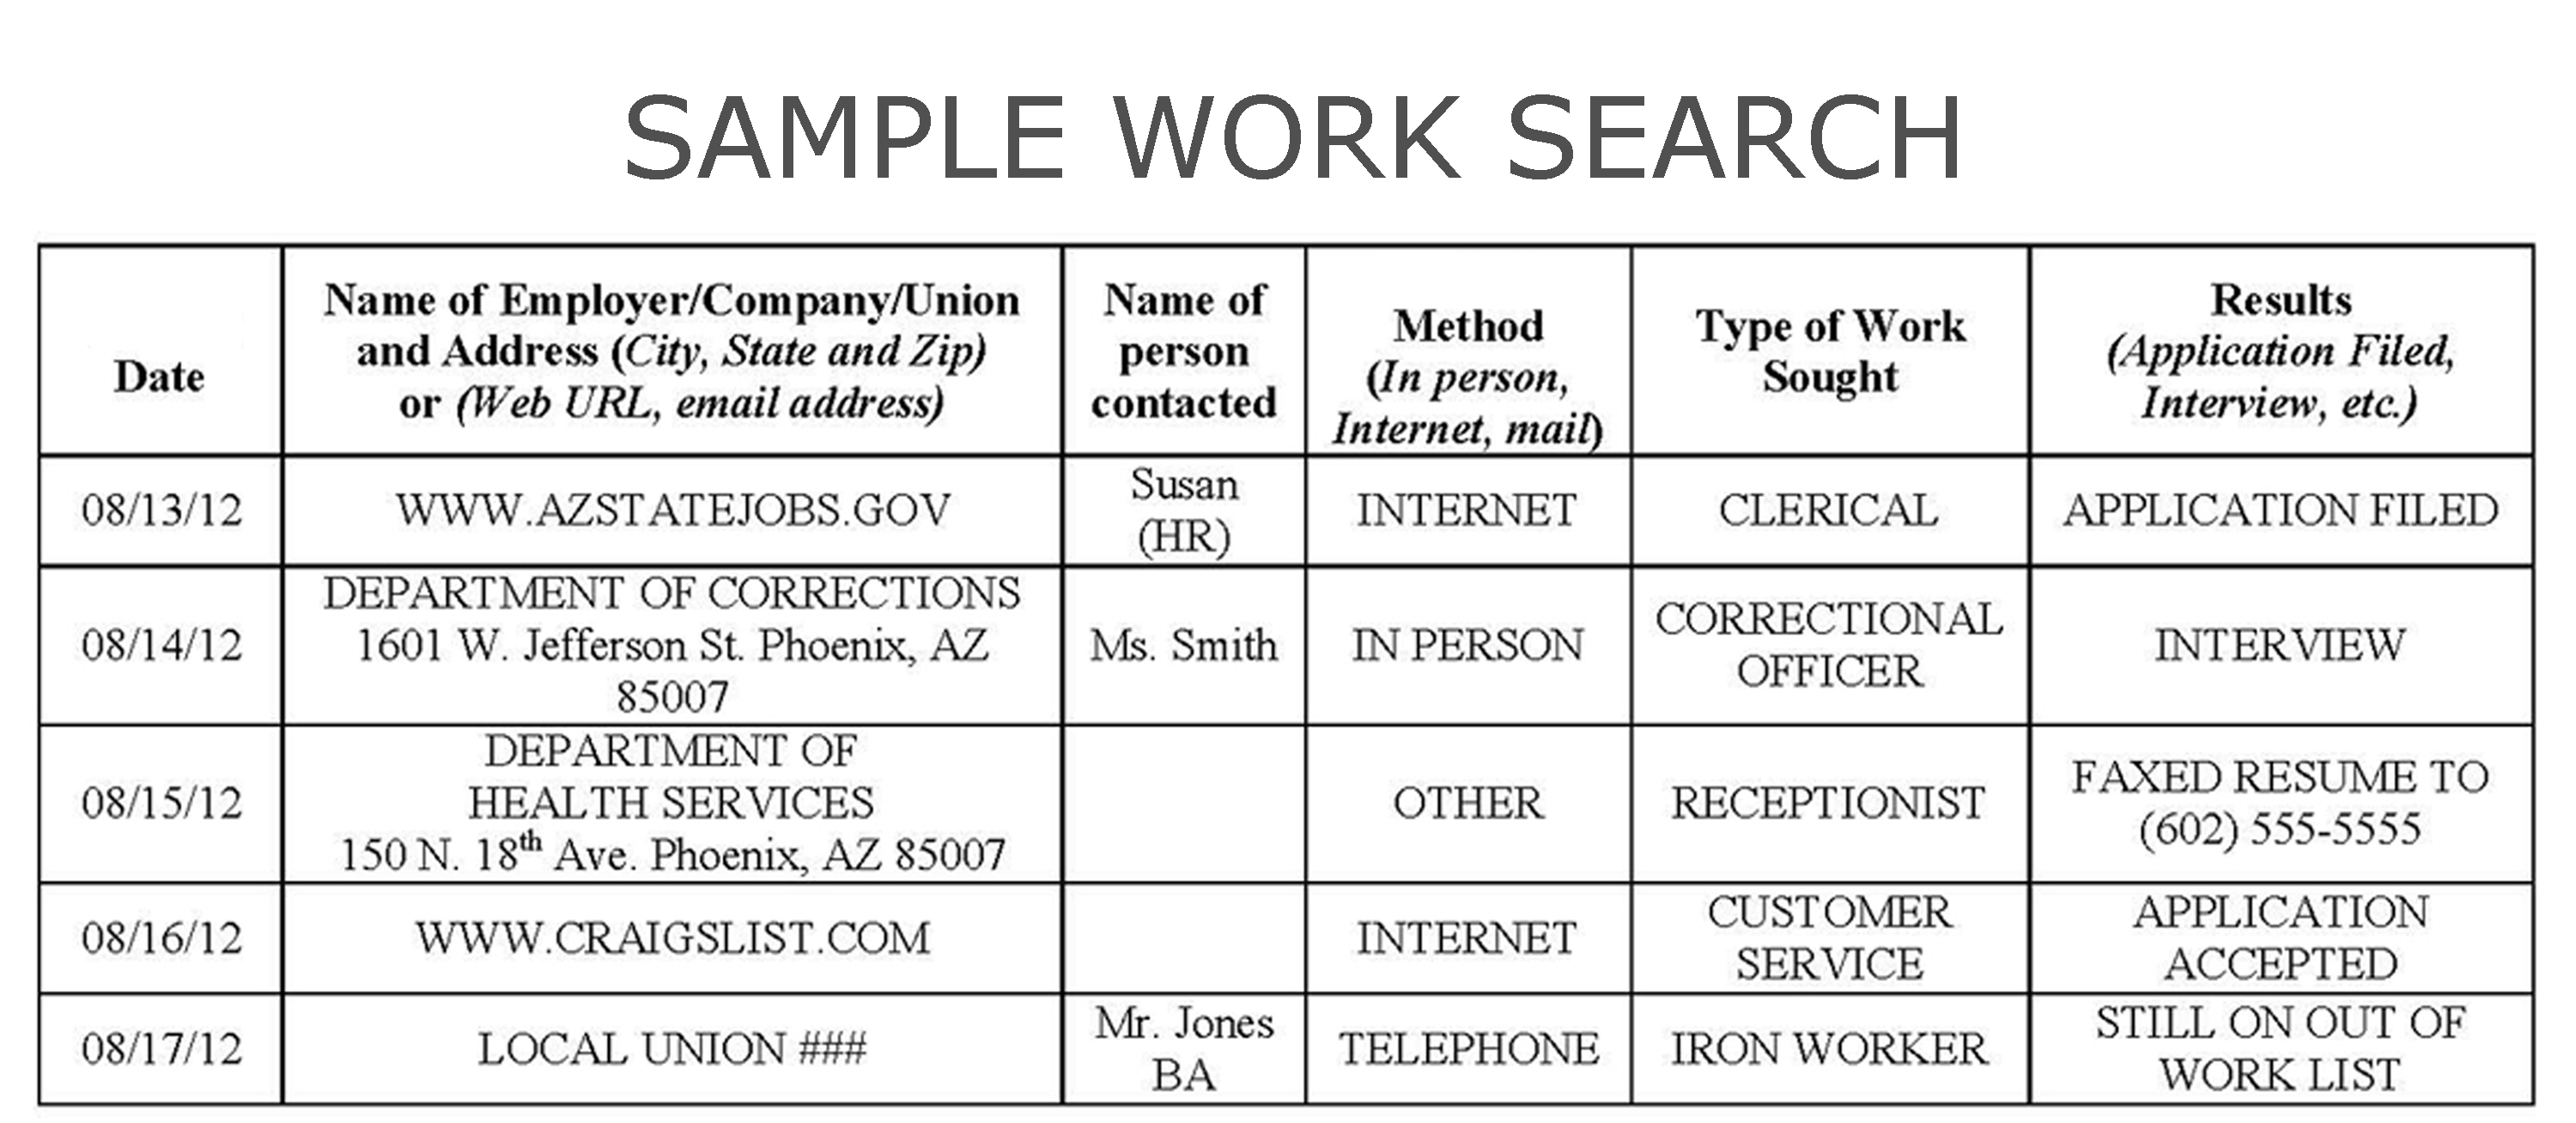 instructions for completing weekly claim for ui benefits arizona sample work search